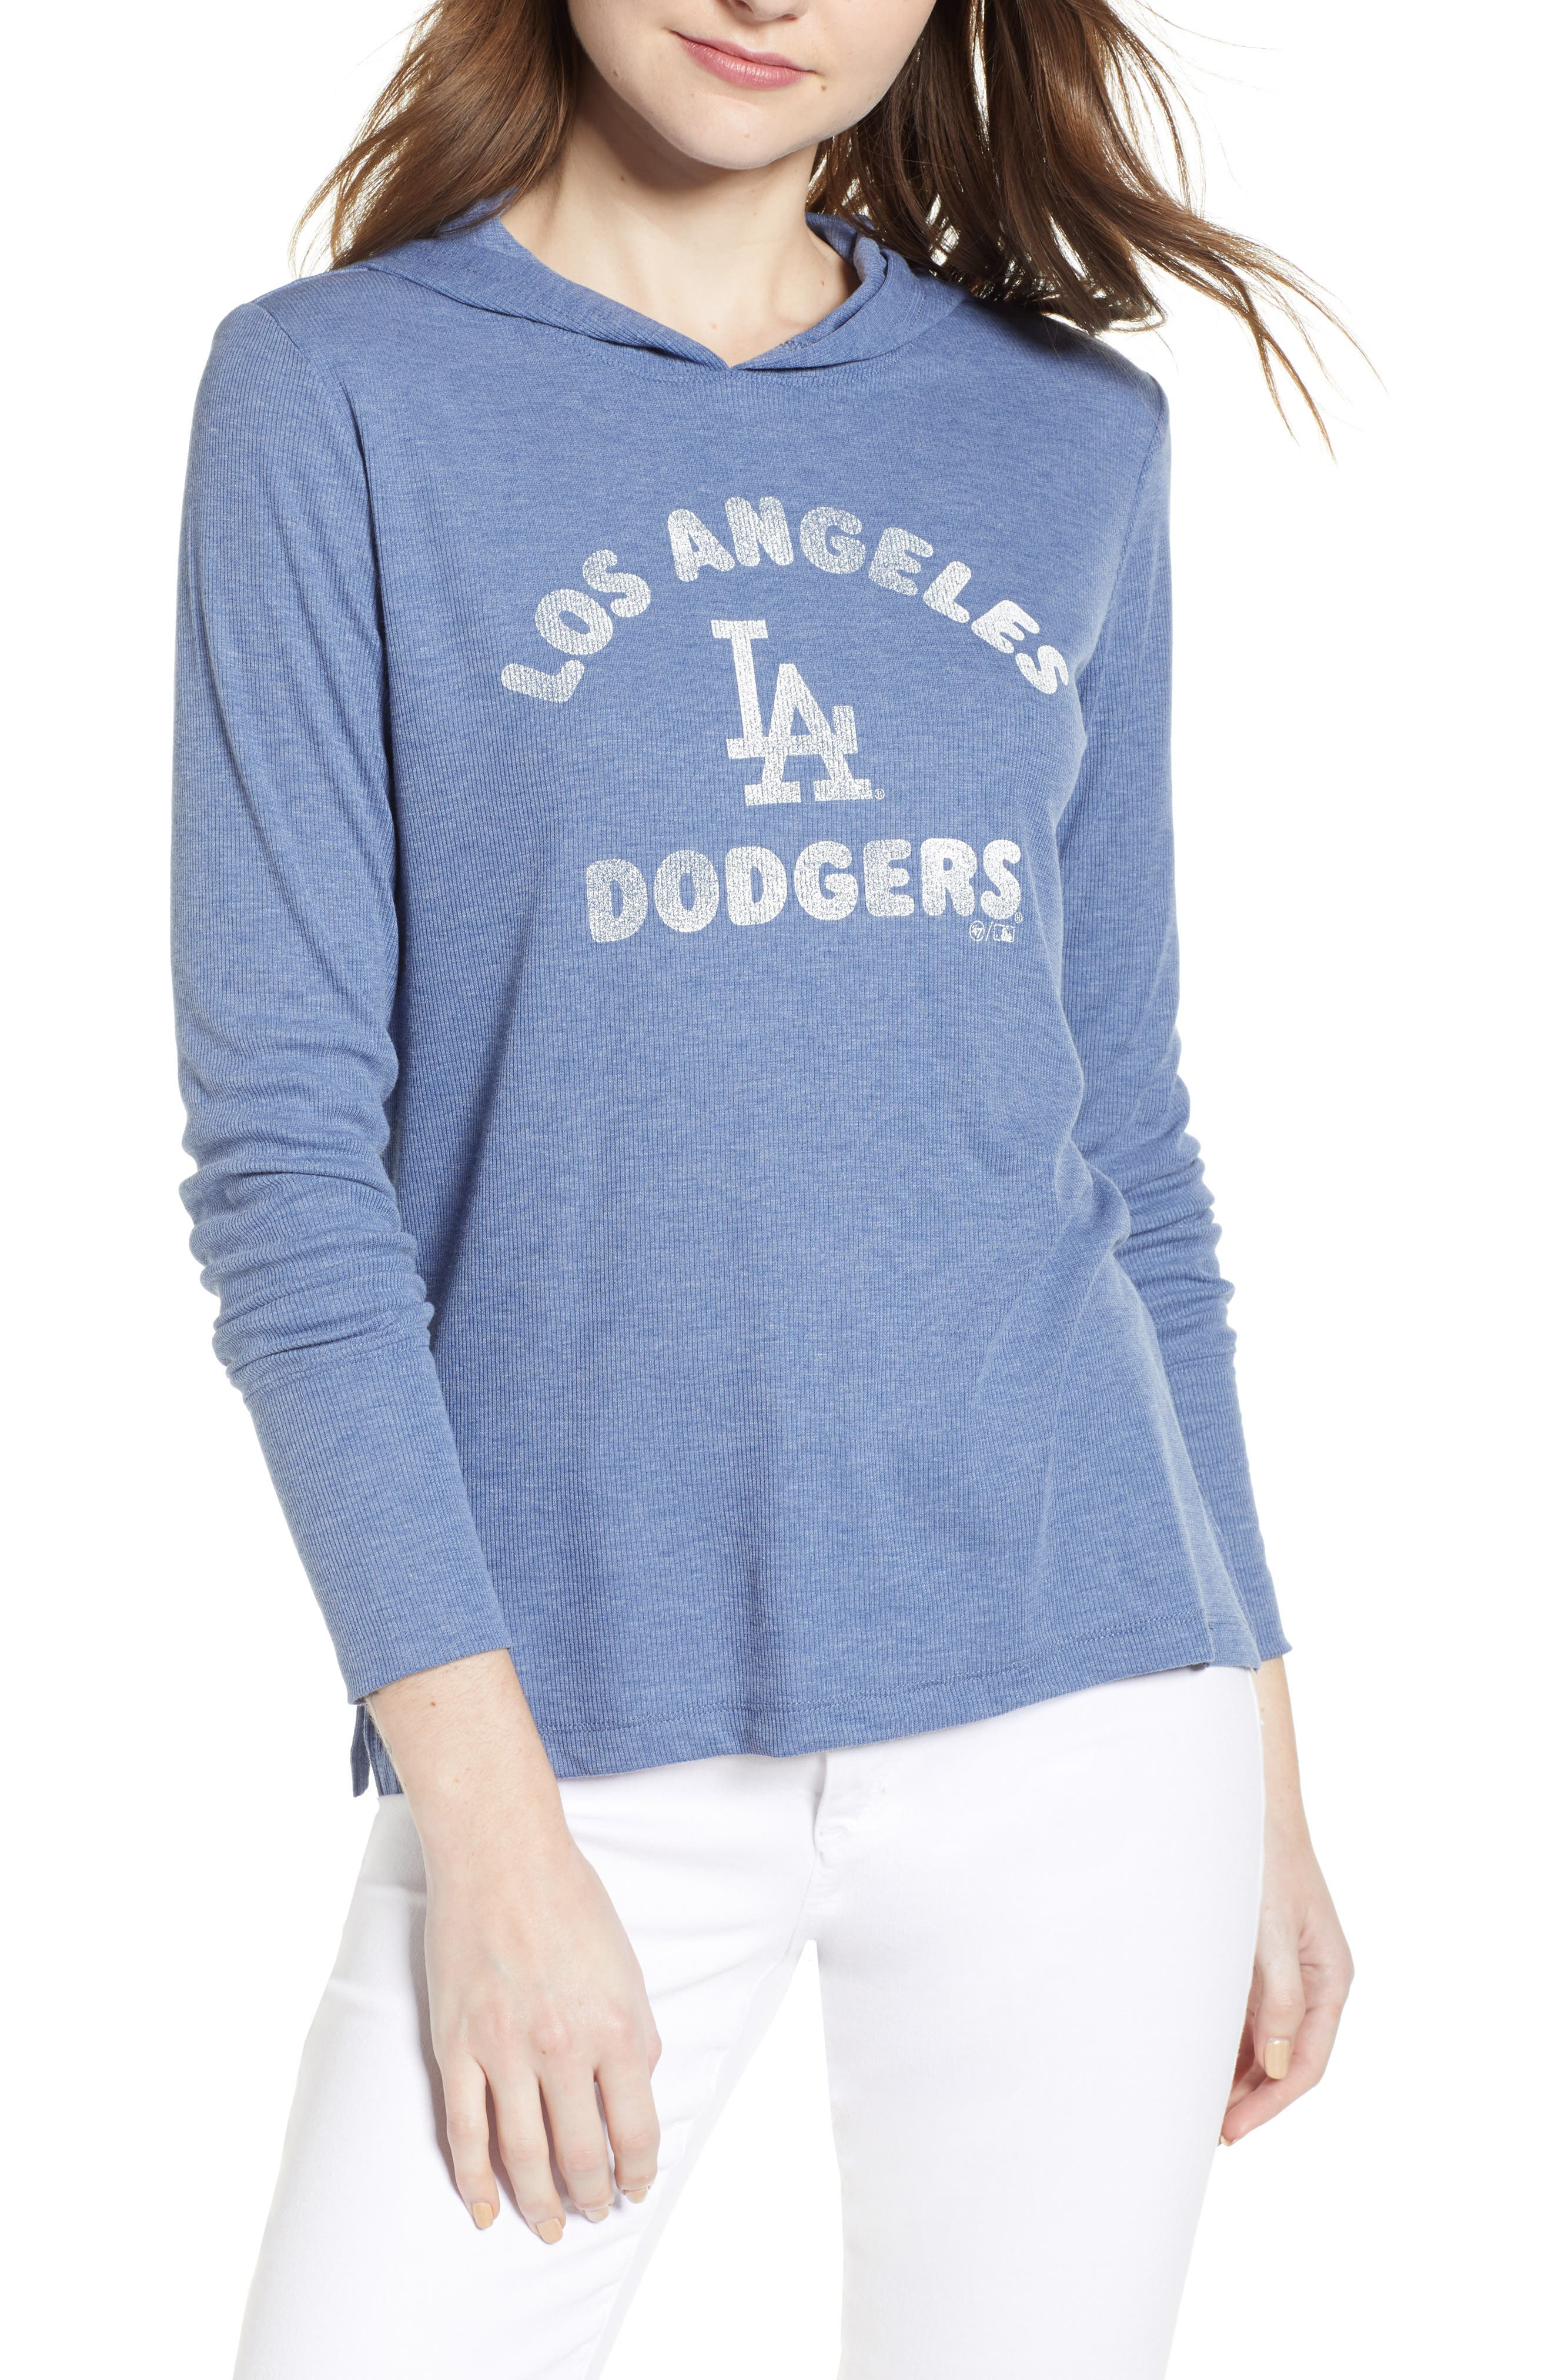 Campbell Los Angeles Dodgers Rib Knit Hooded Top,                         Main,                         color, Bleacher Blue